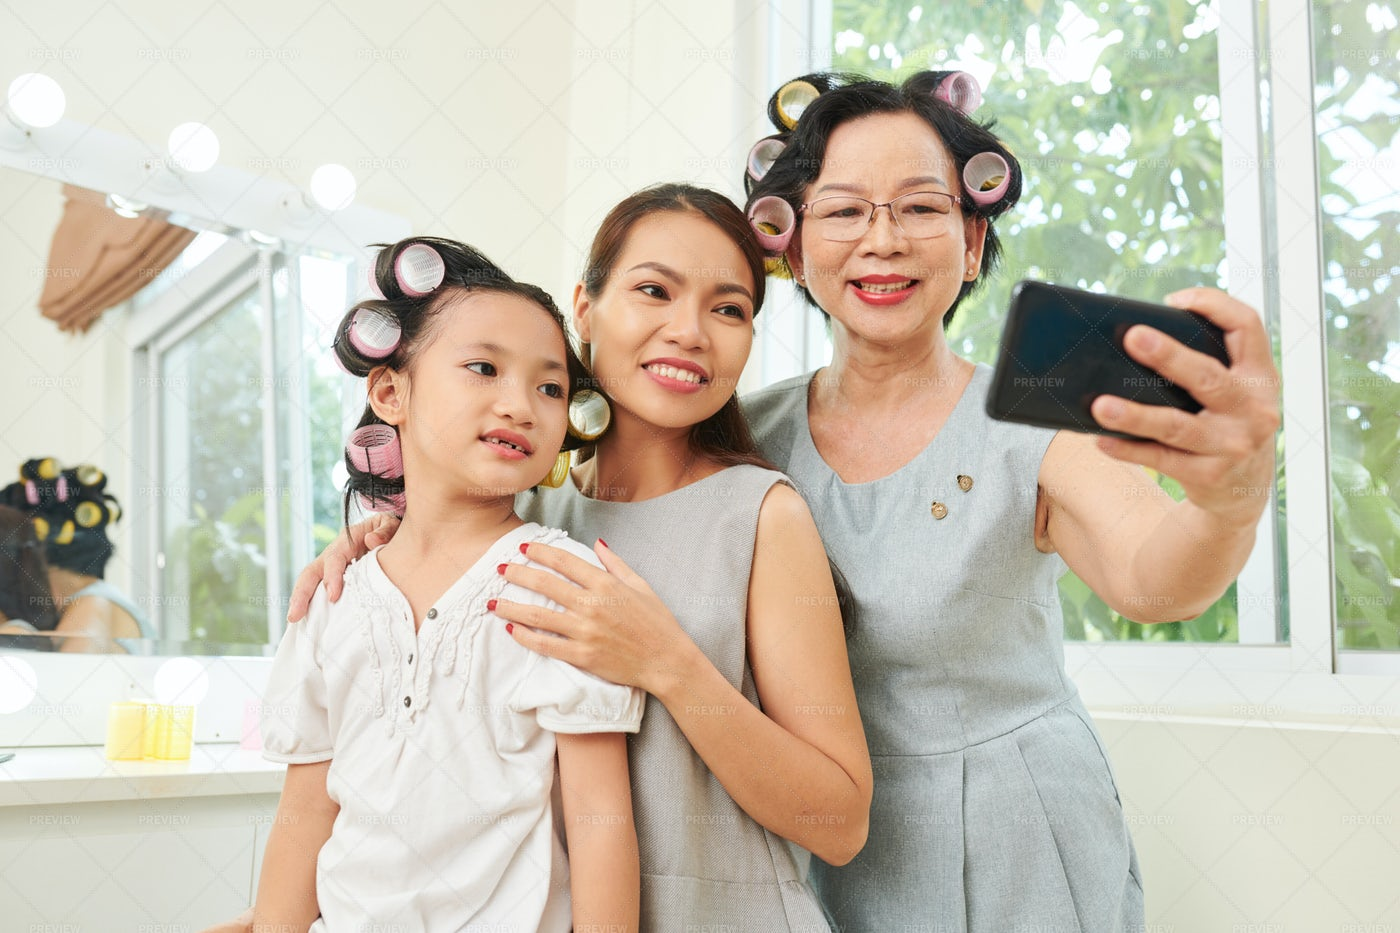 Asian Family With Curlers Making Selfie: Stock Photos